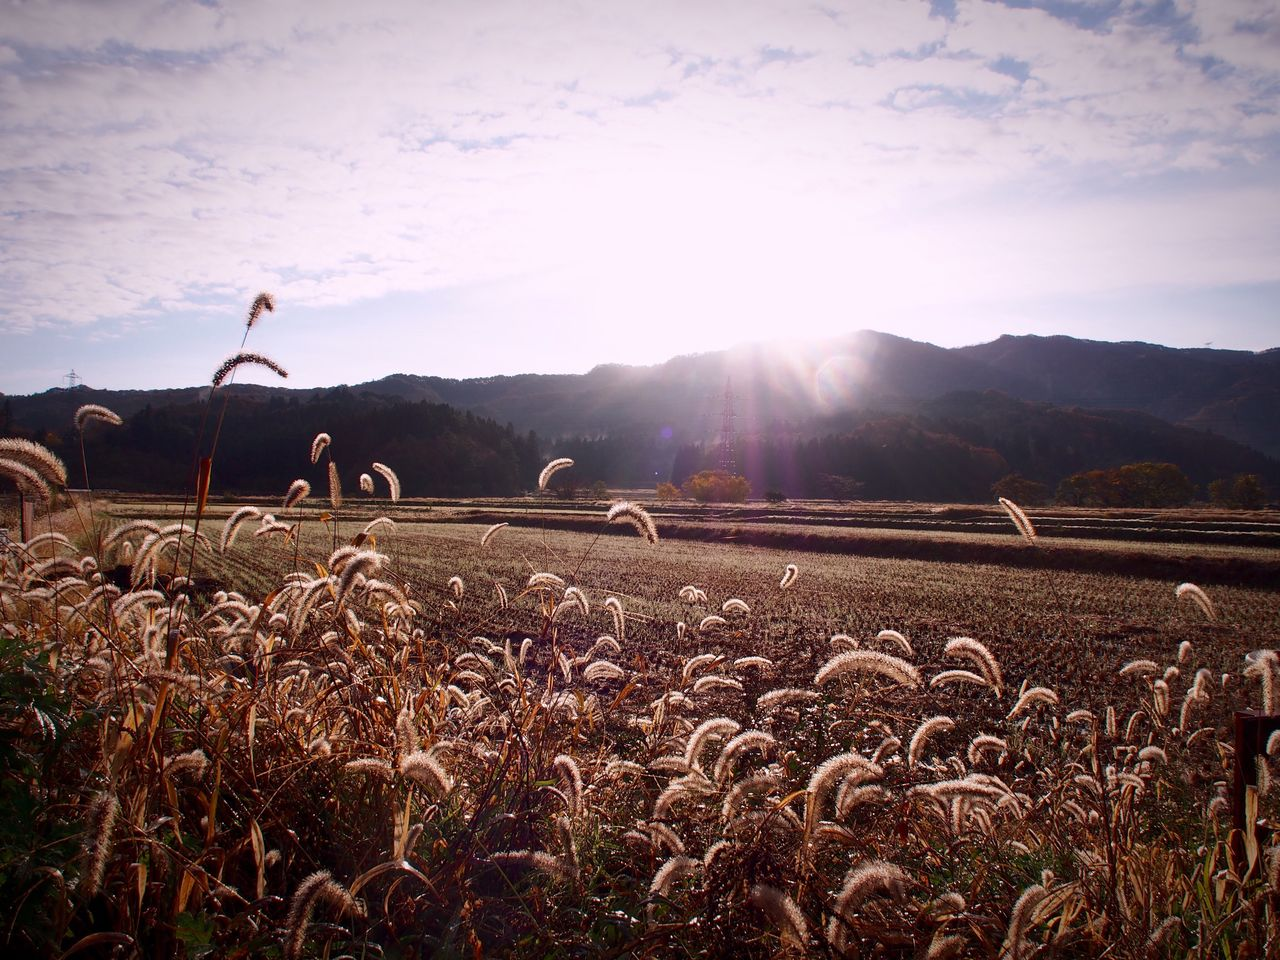 landscape, sky, environment, land, field, plant, nature, agriculture, tranquility, scenics - nature, mountain, tranquil scene, beauty in nature, growth, rural scene, crop, no people, cloud - sky, sunlight, day, lens flare, outdoors, bright, plantation